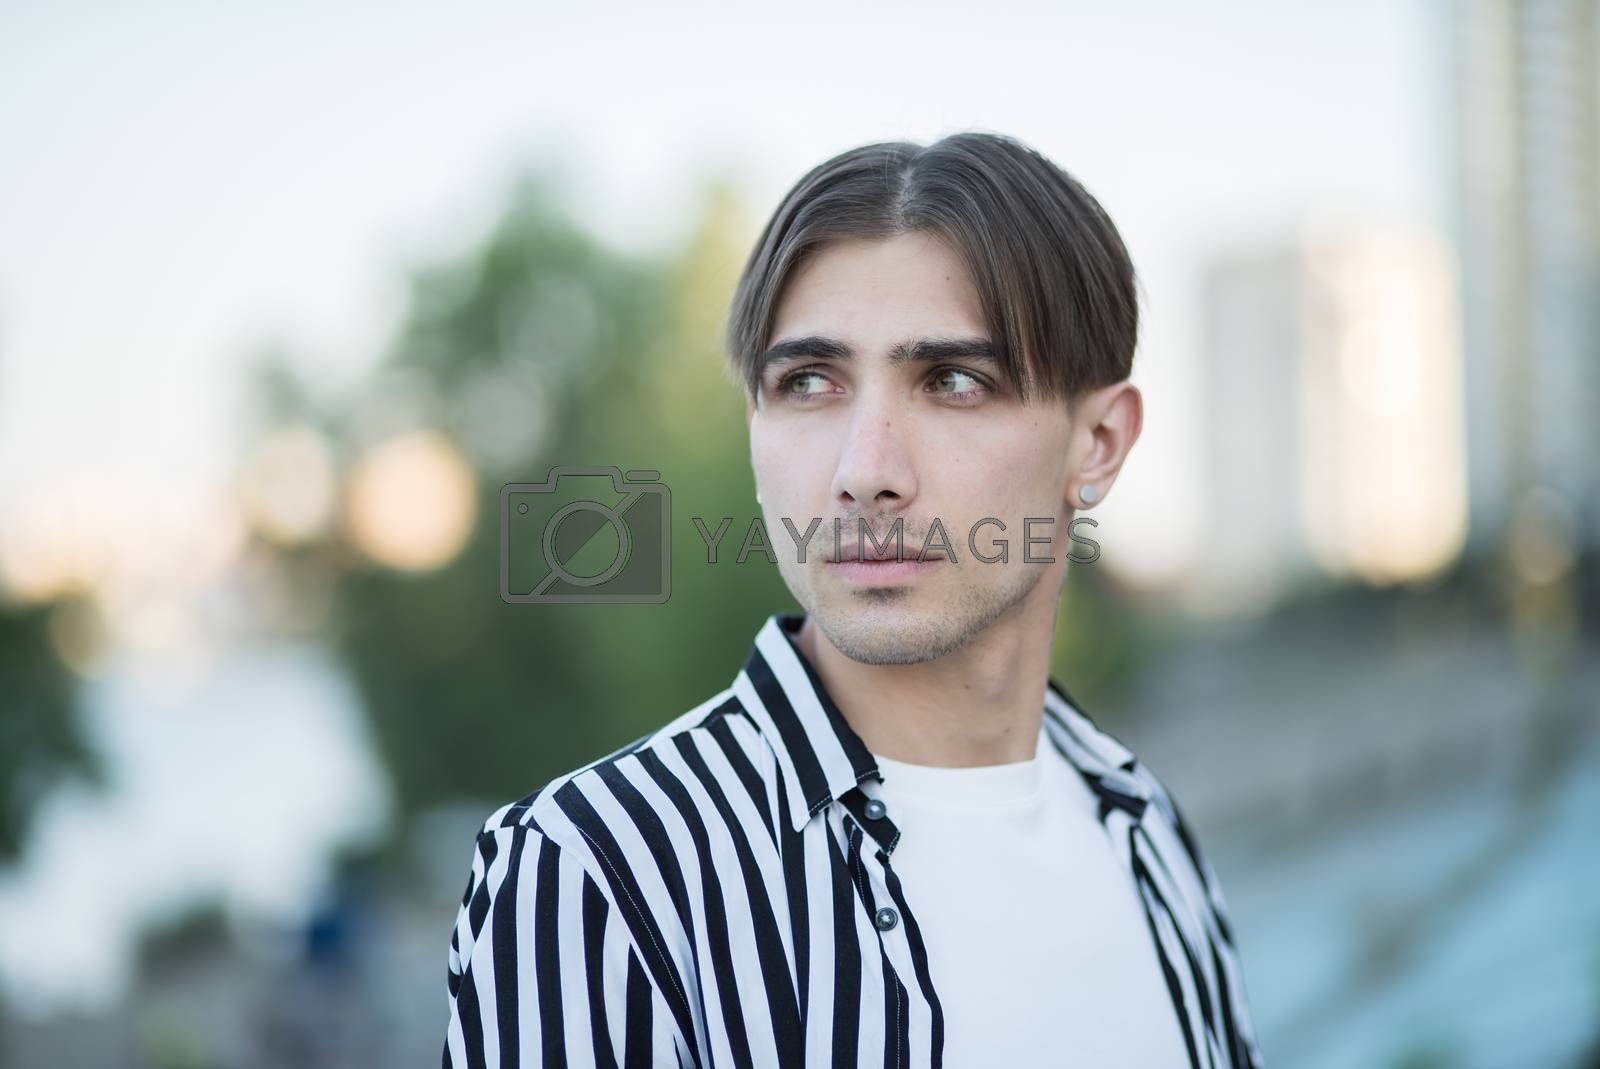 Portrait of a gay man - member of the LGBTQ community by day